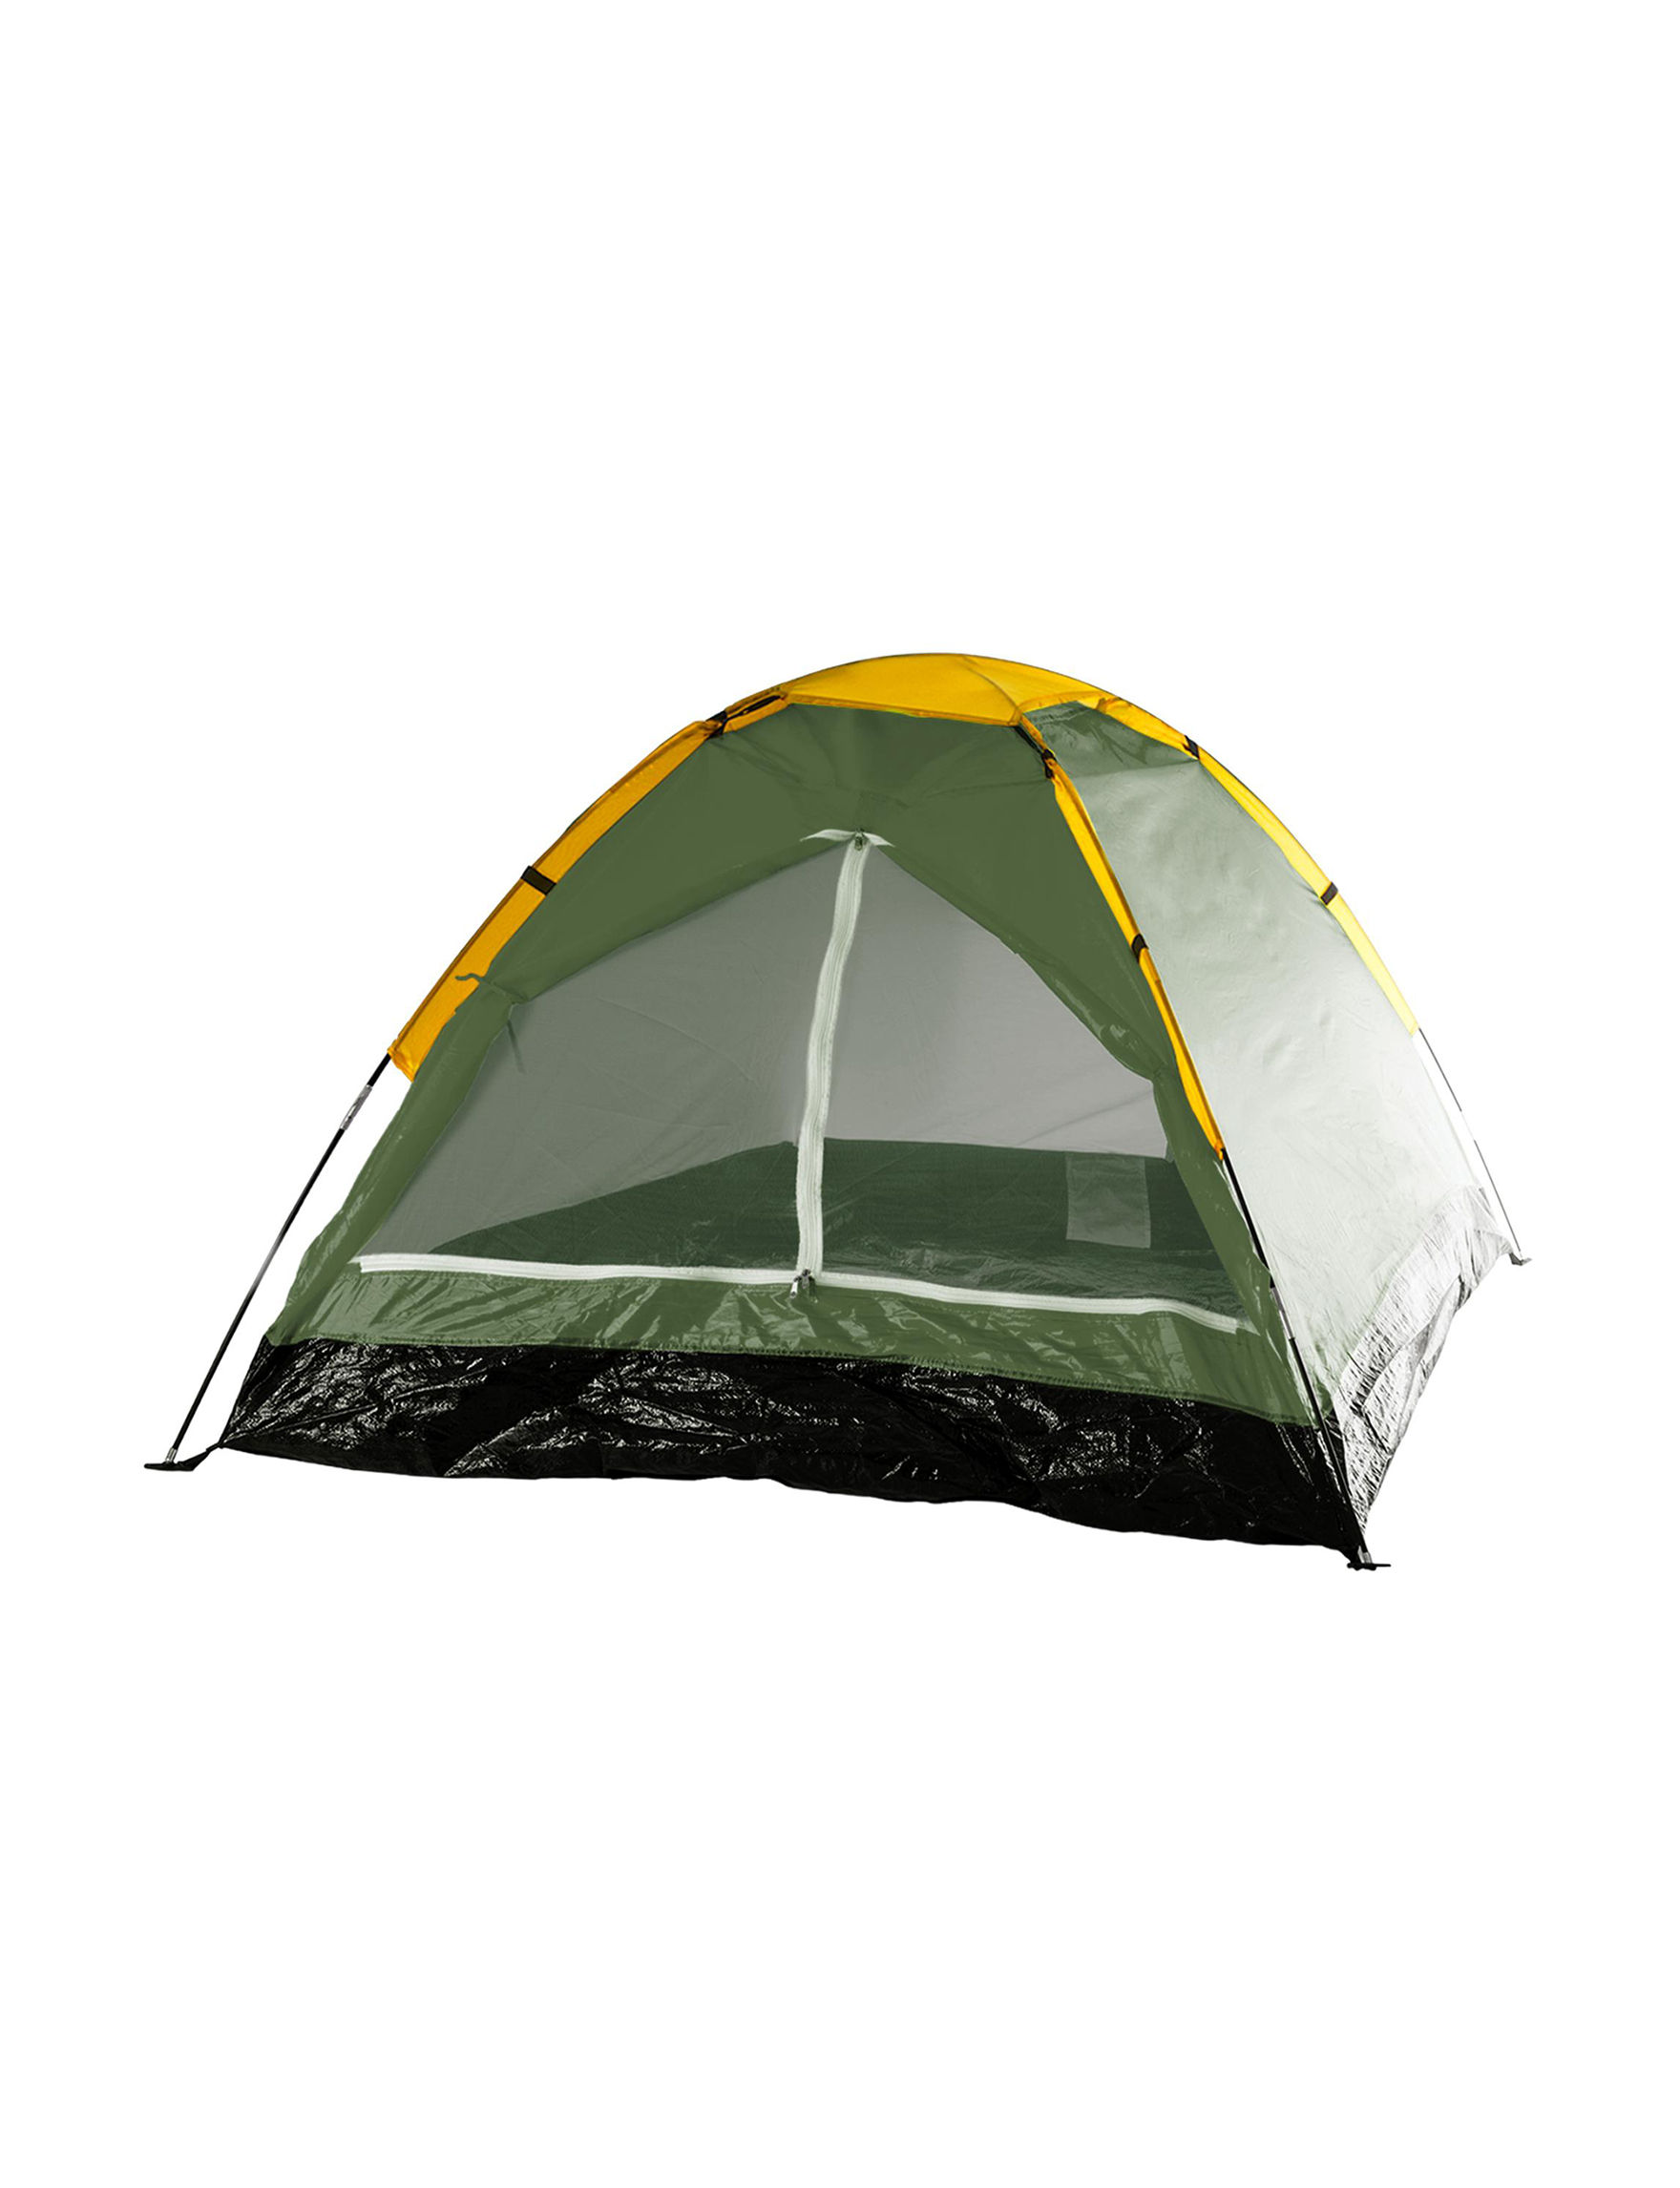 Wakeman Green Tents & Canopies Camping & Outdoor Gear